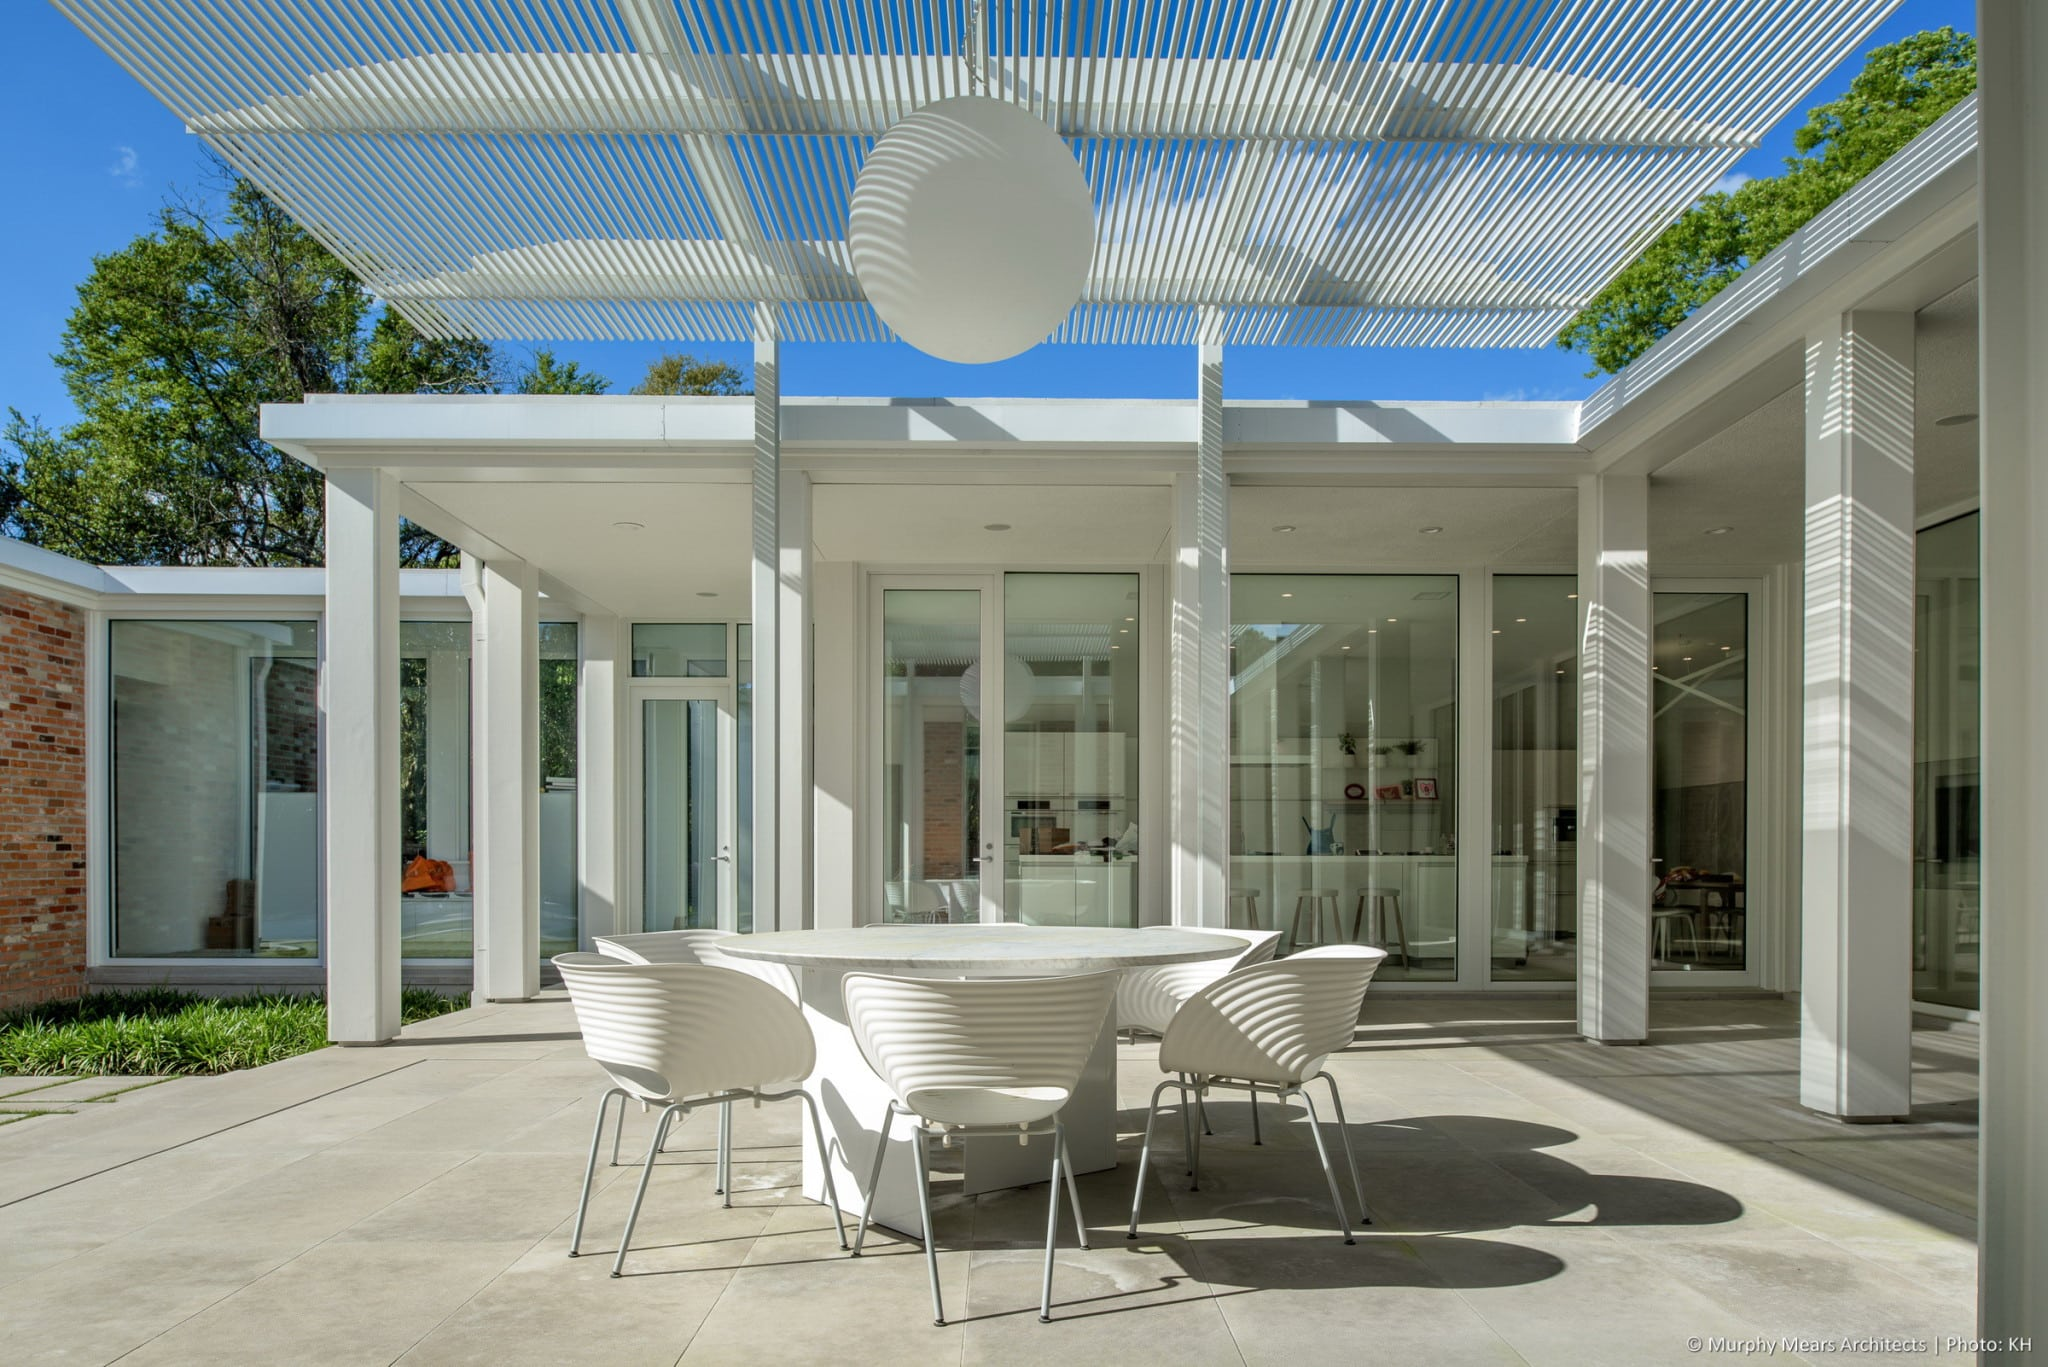 Outdoor dining beneath the aluminum and steel trellis on the upper terrace.